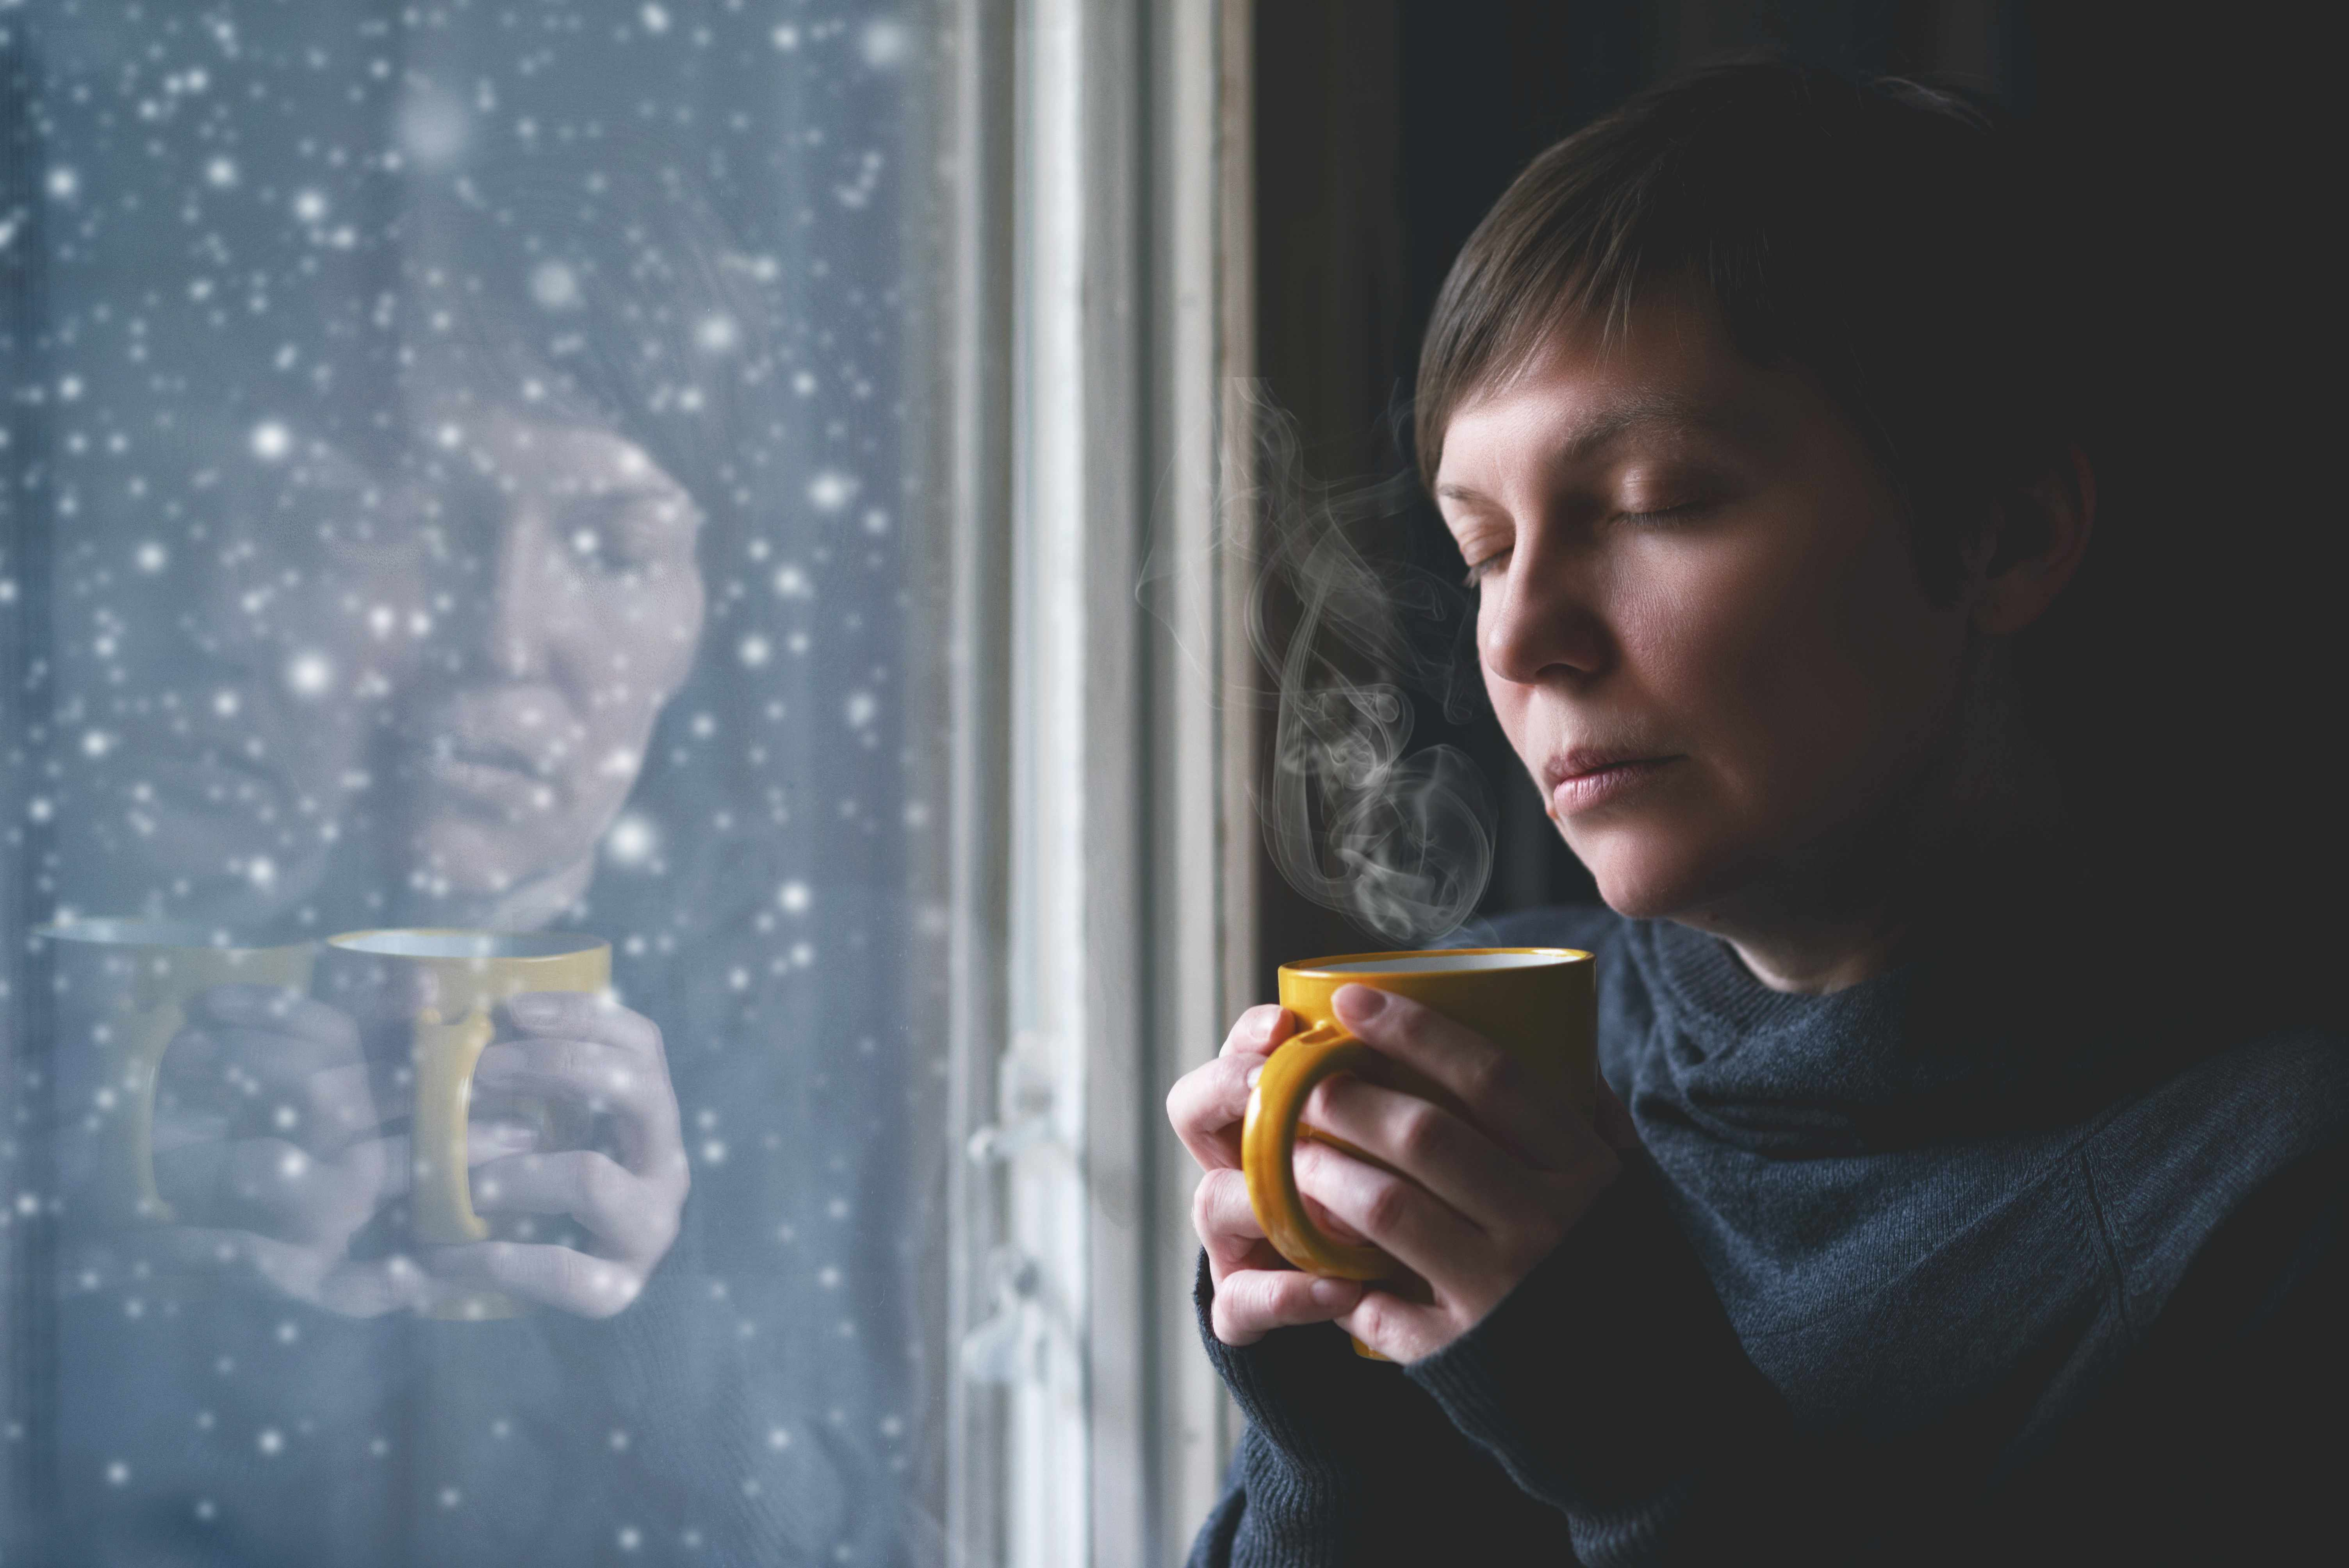 sad woman with depression, lonliness or seasonal affective disorder